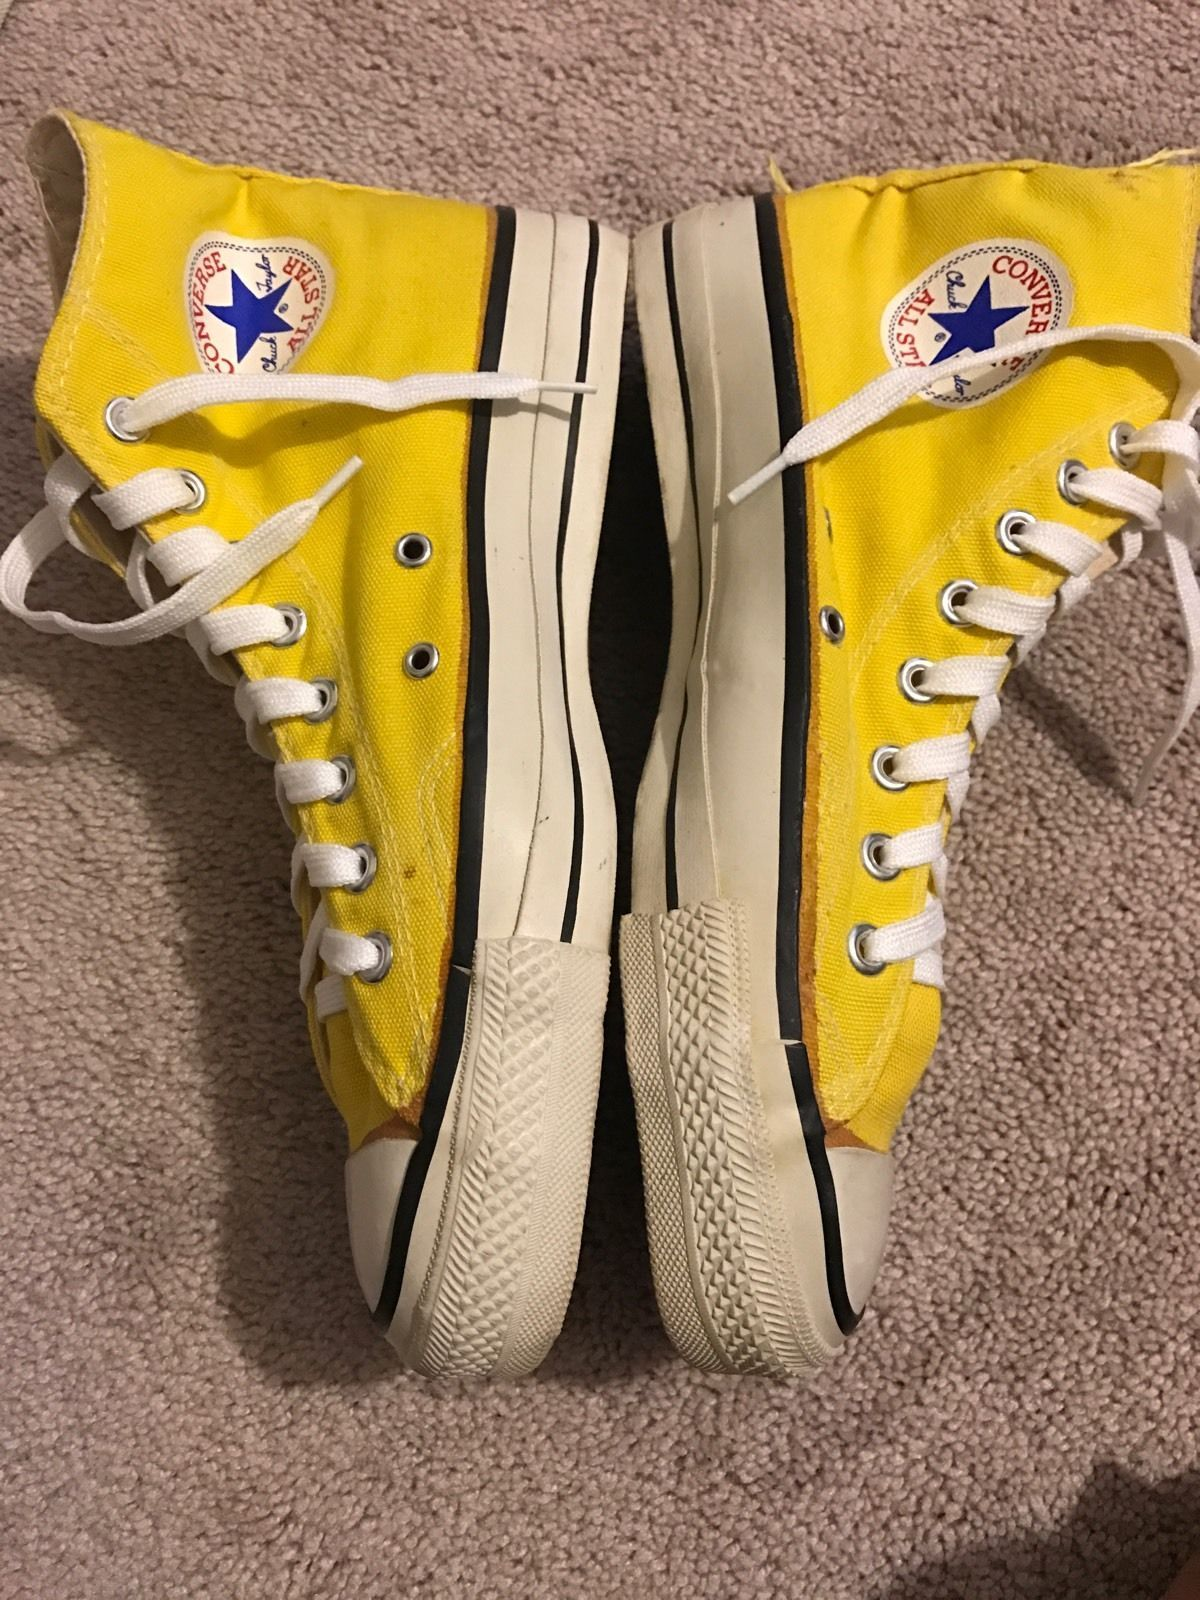 955d9006316d9c Vintage Converse All star 80 s Extra Stitch Yellow color size 9 Made in USA